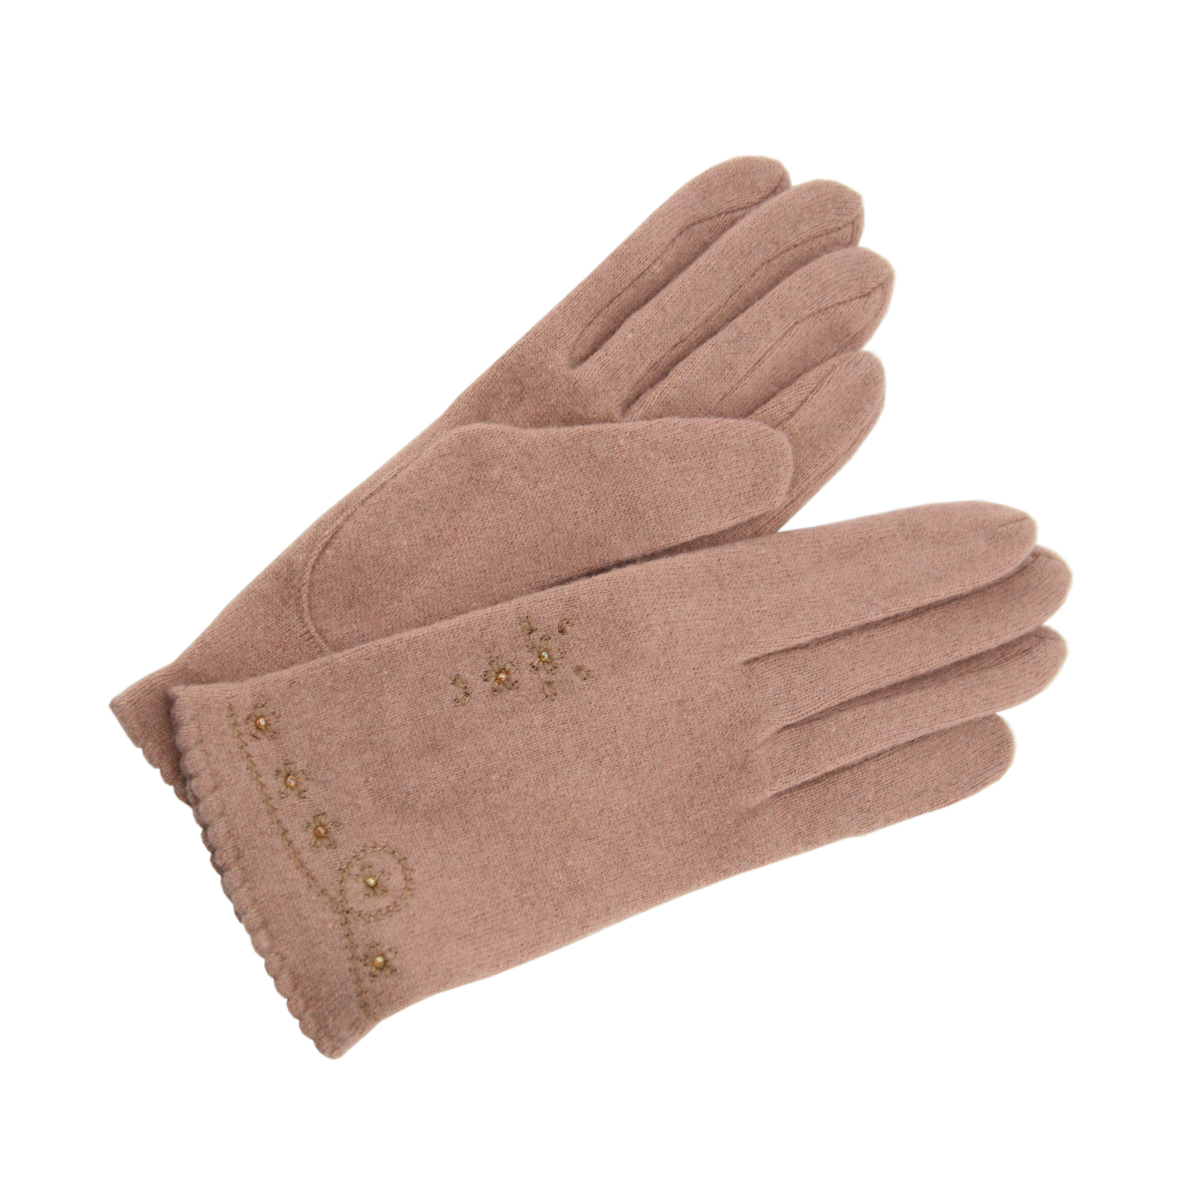 Embroidered woman glove